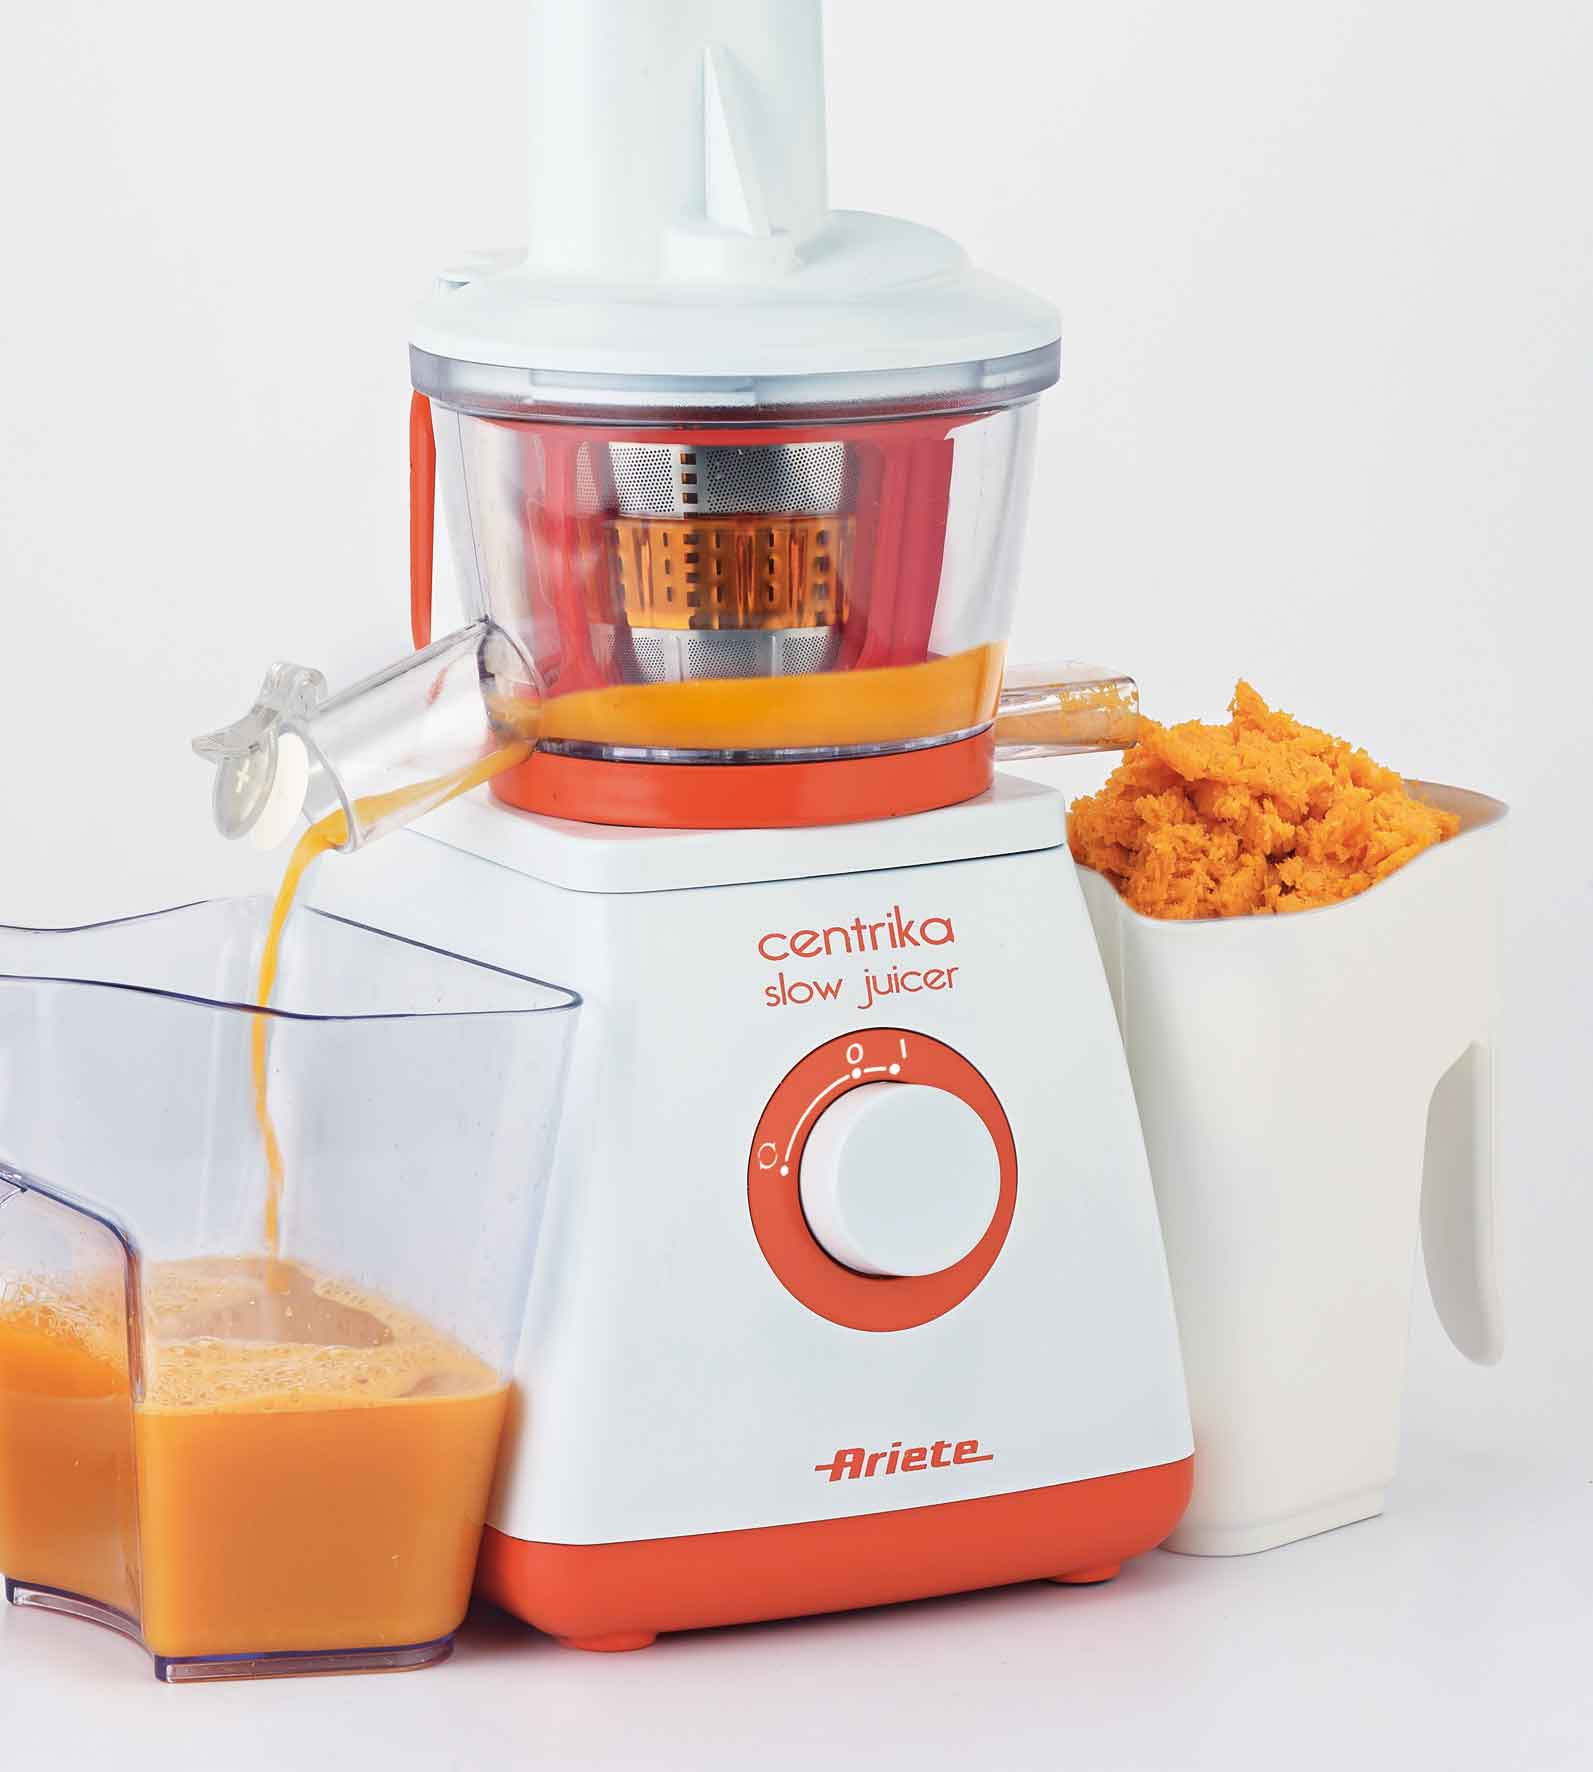 Cucina Red Slow Juicer Review : Centrika Slow Juicer - Ariete Piccoli elettrodomestici